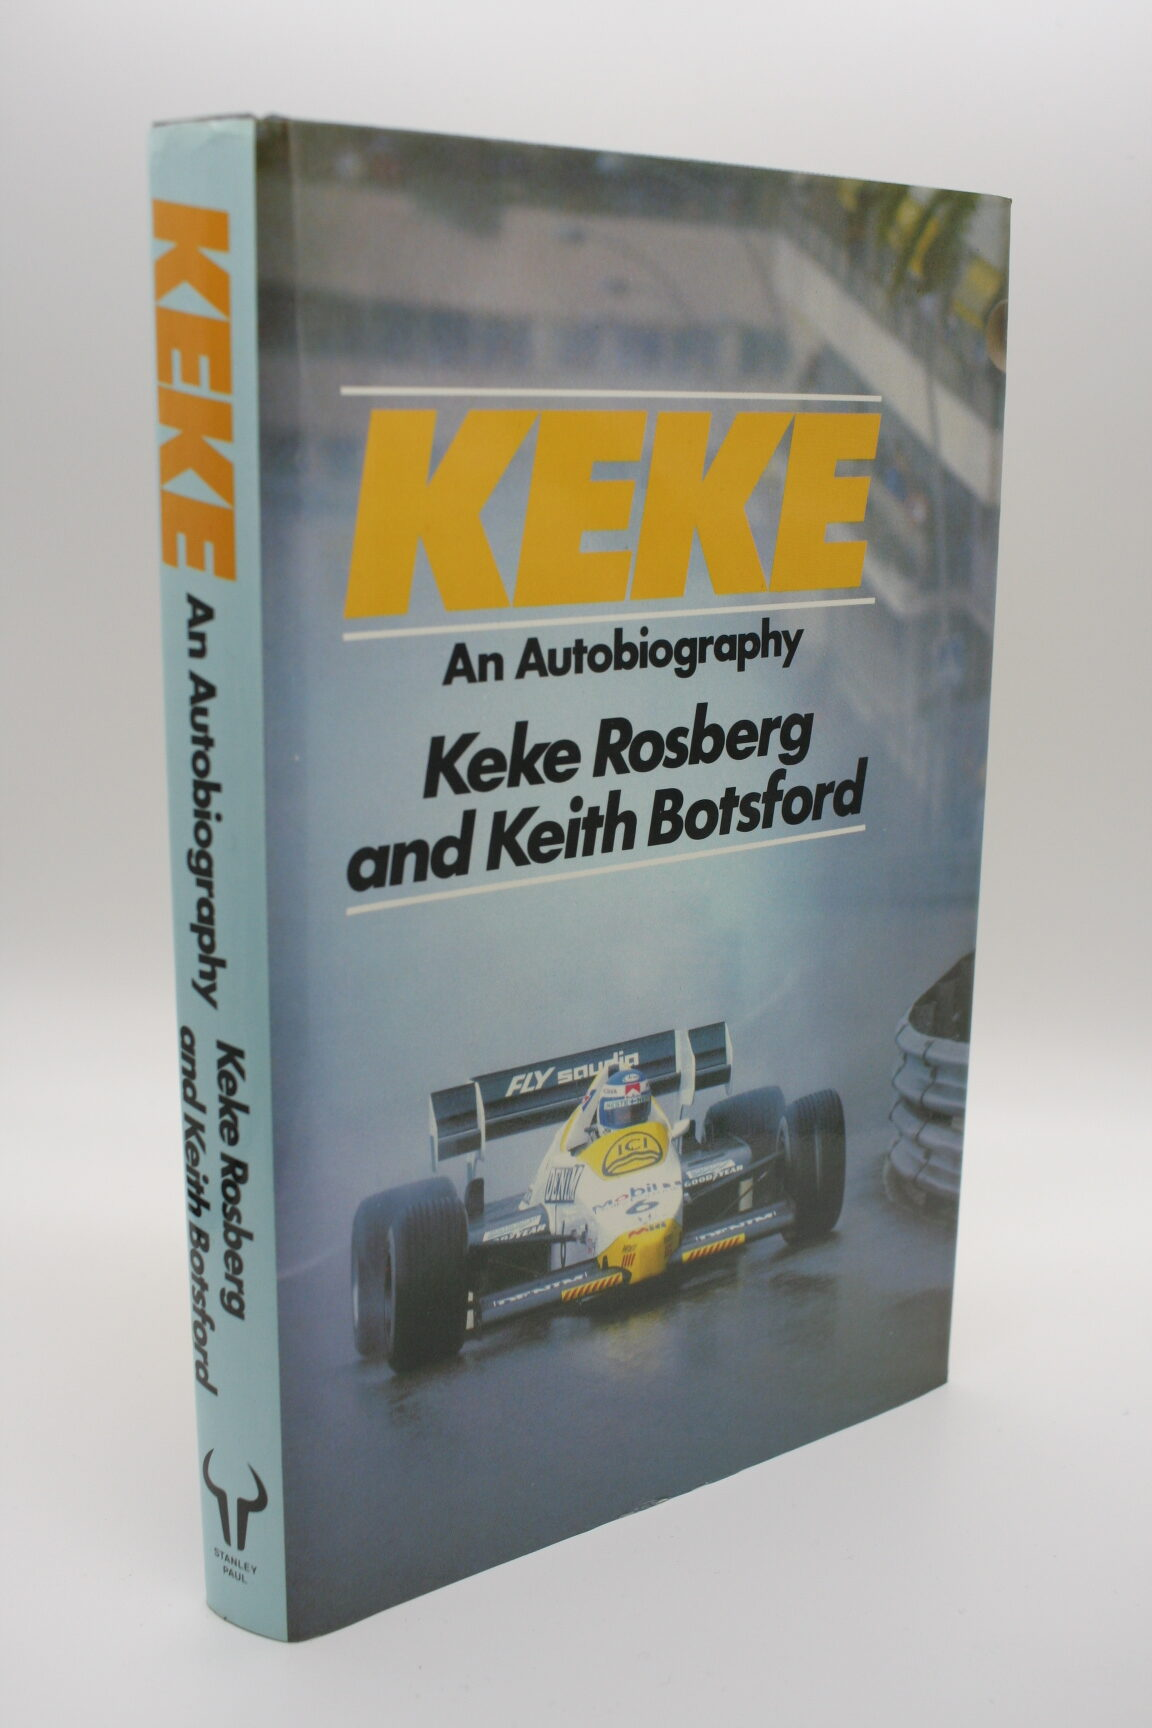 Keke: An Autobiography - Keke Rosberg and Keith Botsford